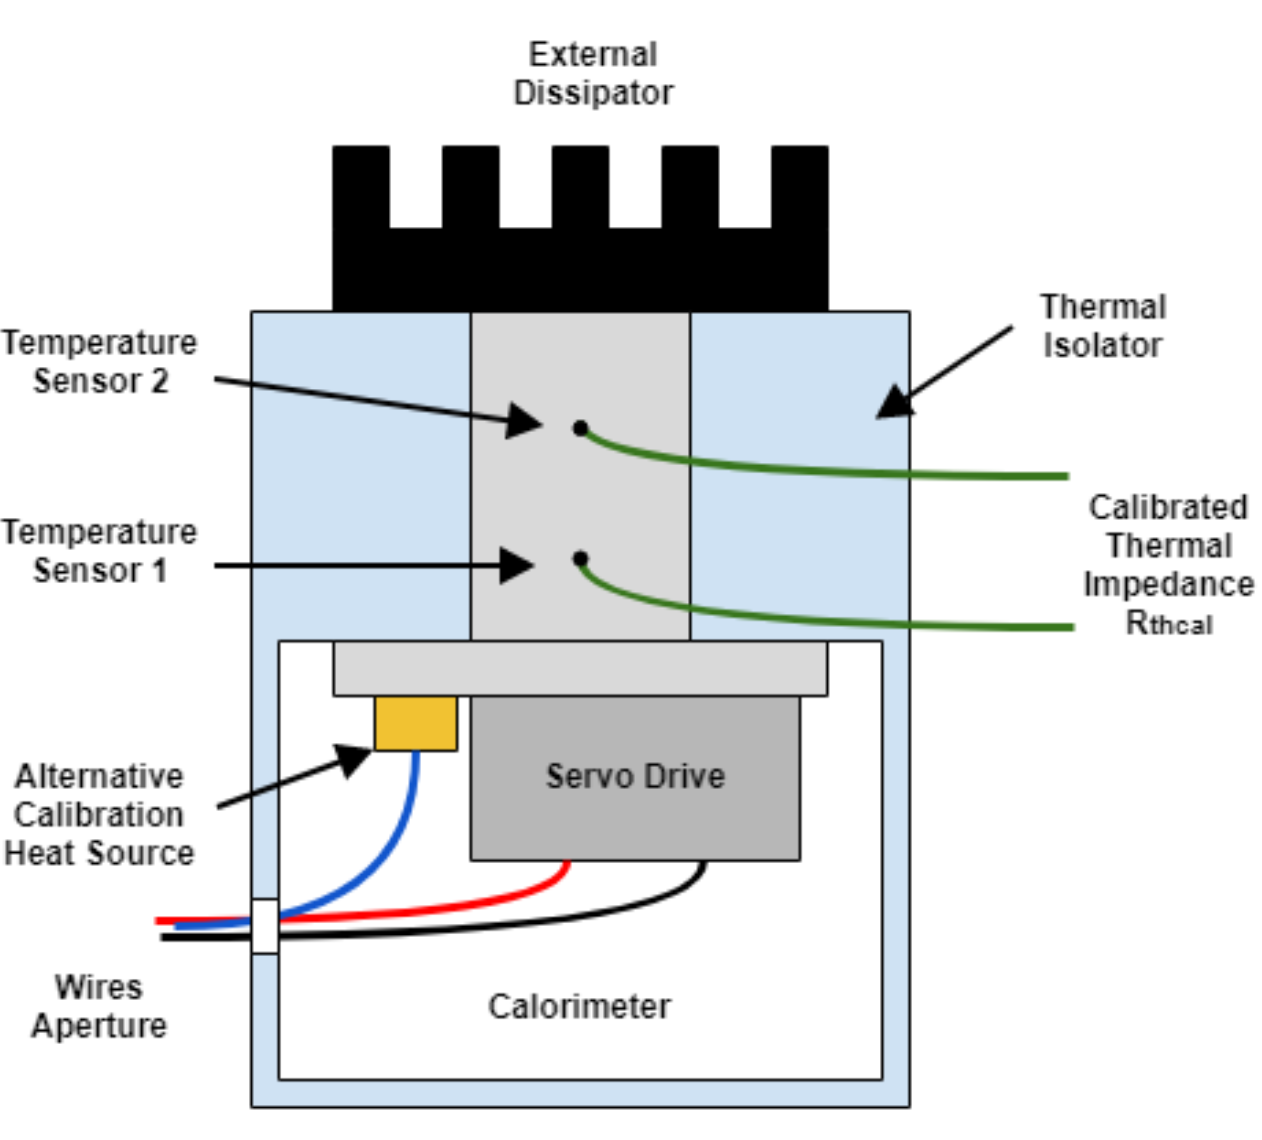 Calibrated thermal impedance